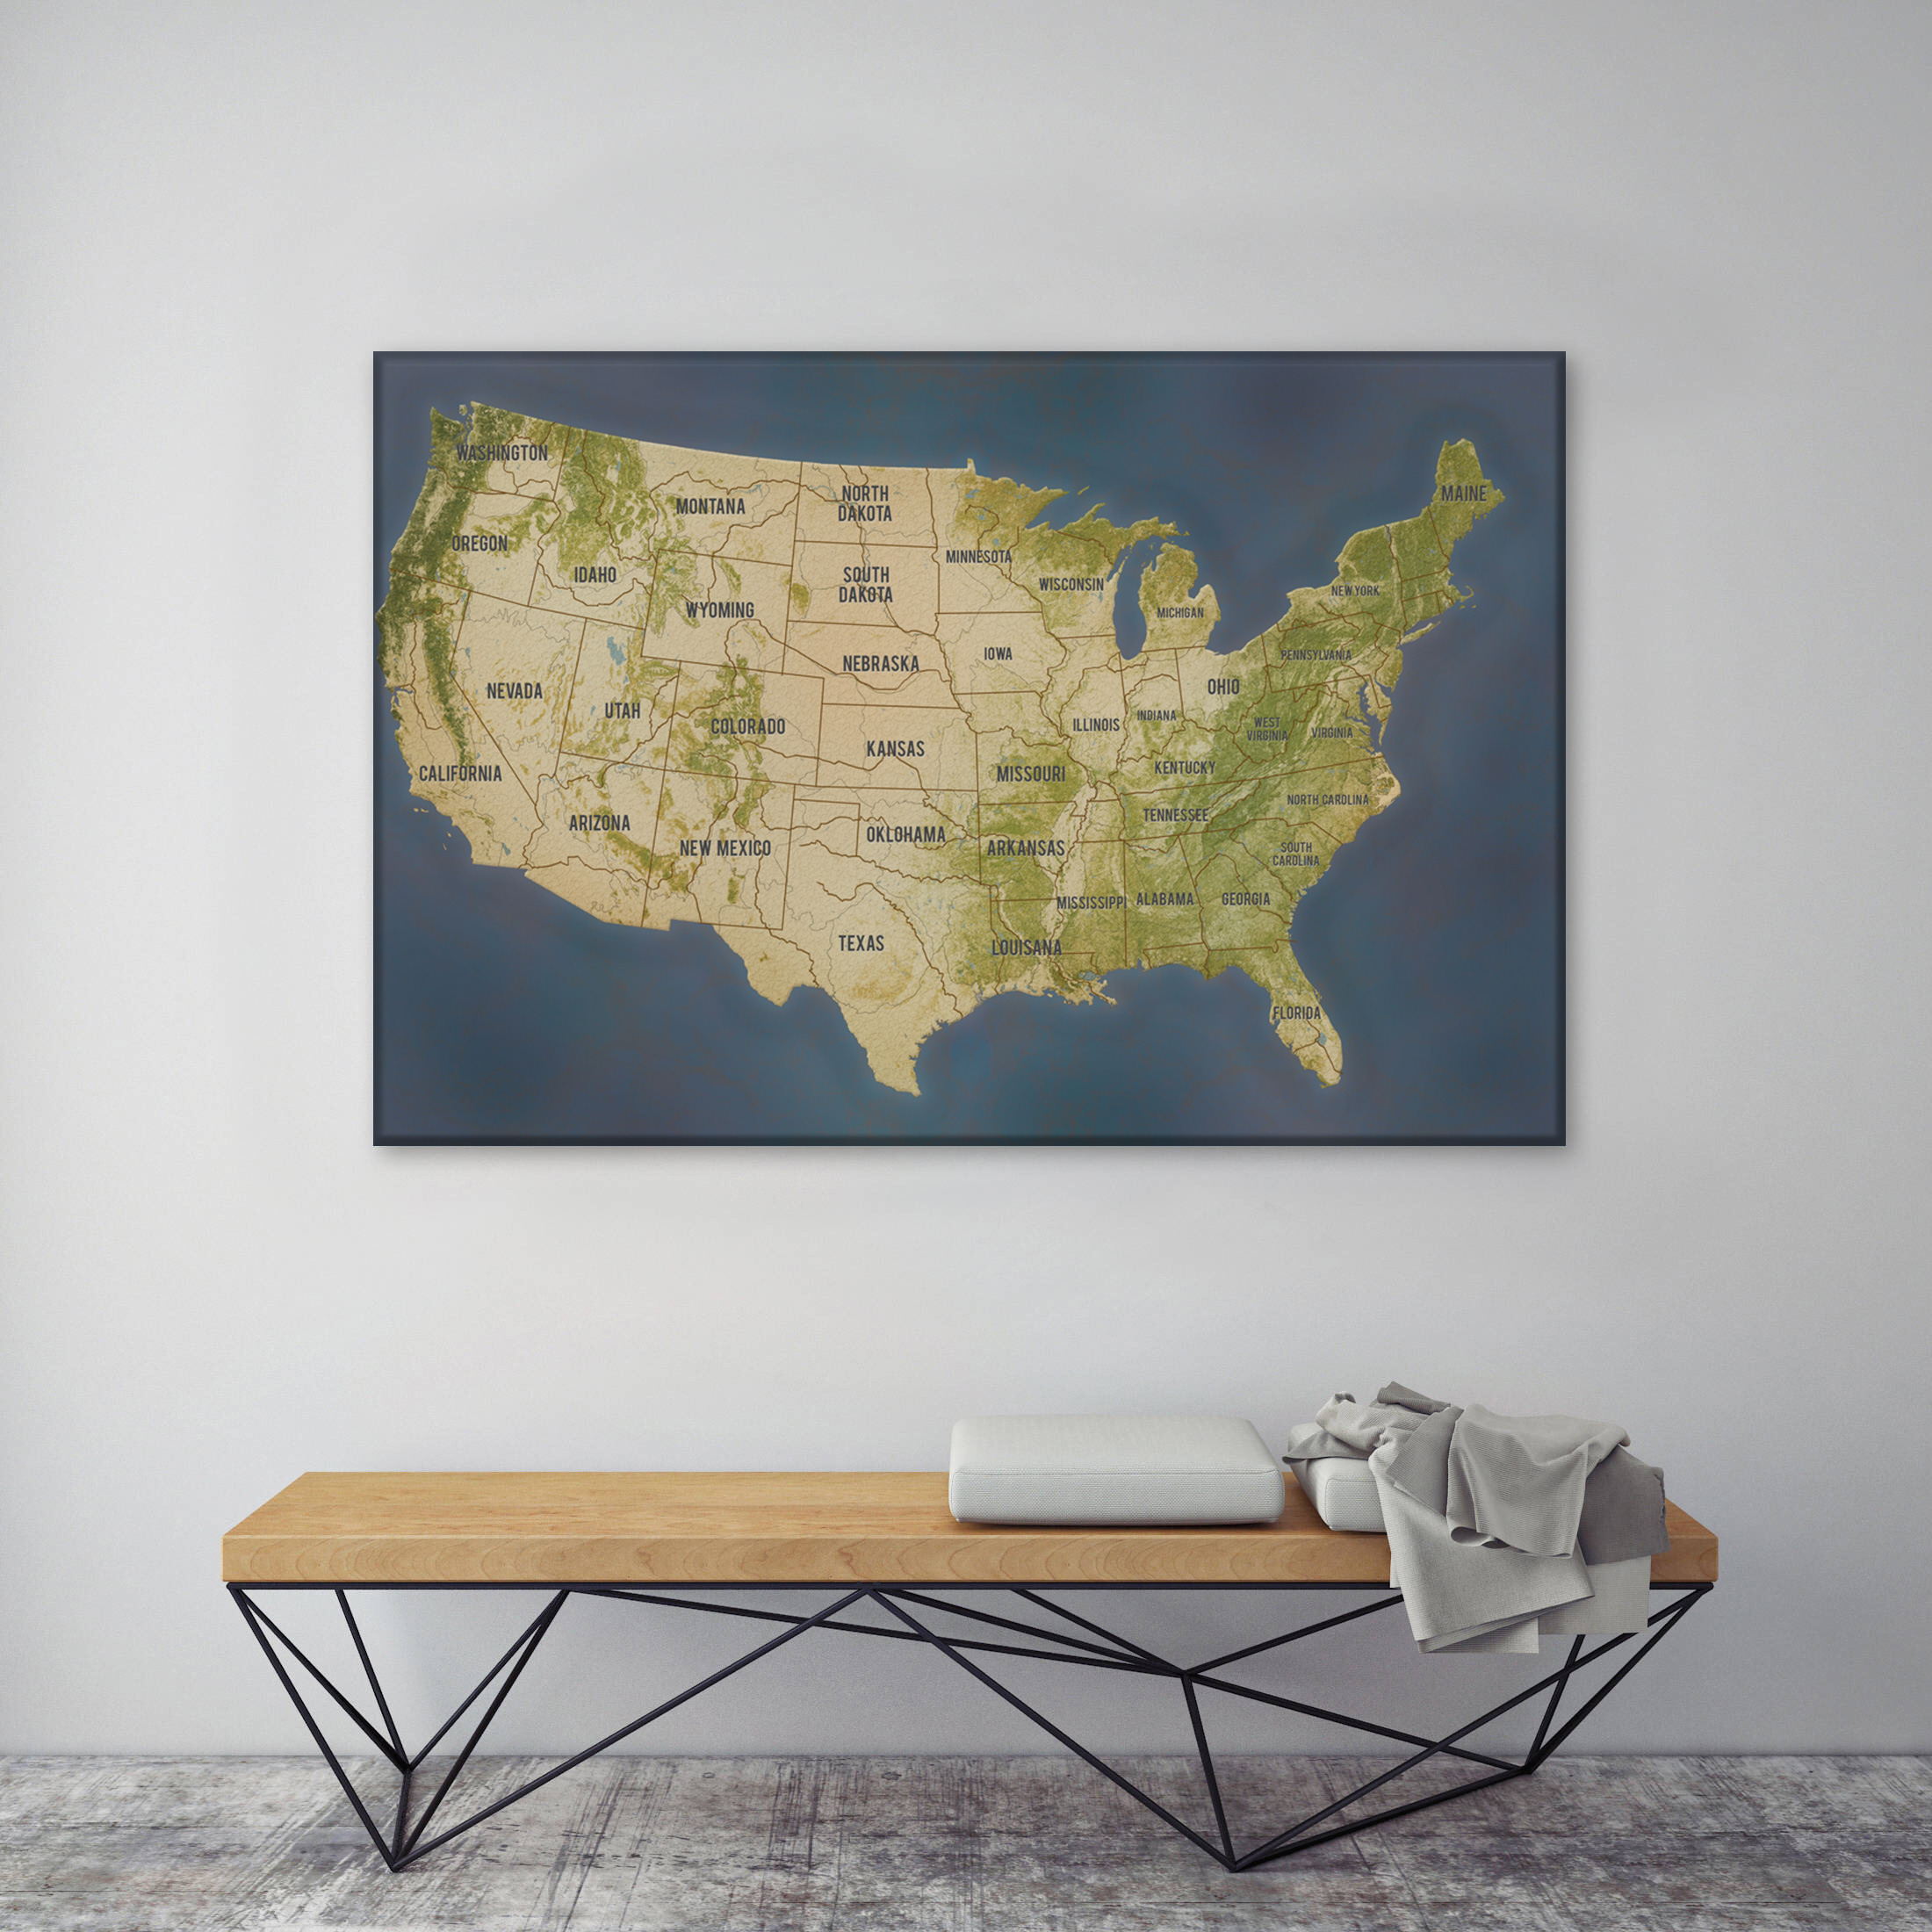 Personalized Usa Map.Personalized Push Pin Travel Map America In Charcoal Colour Scheme